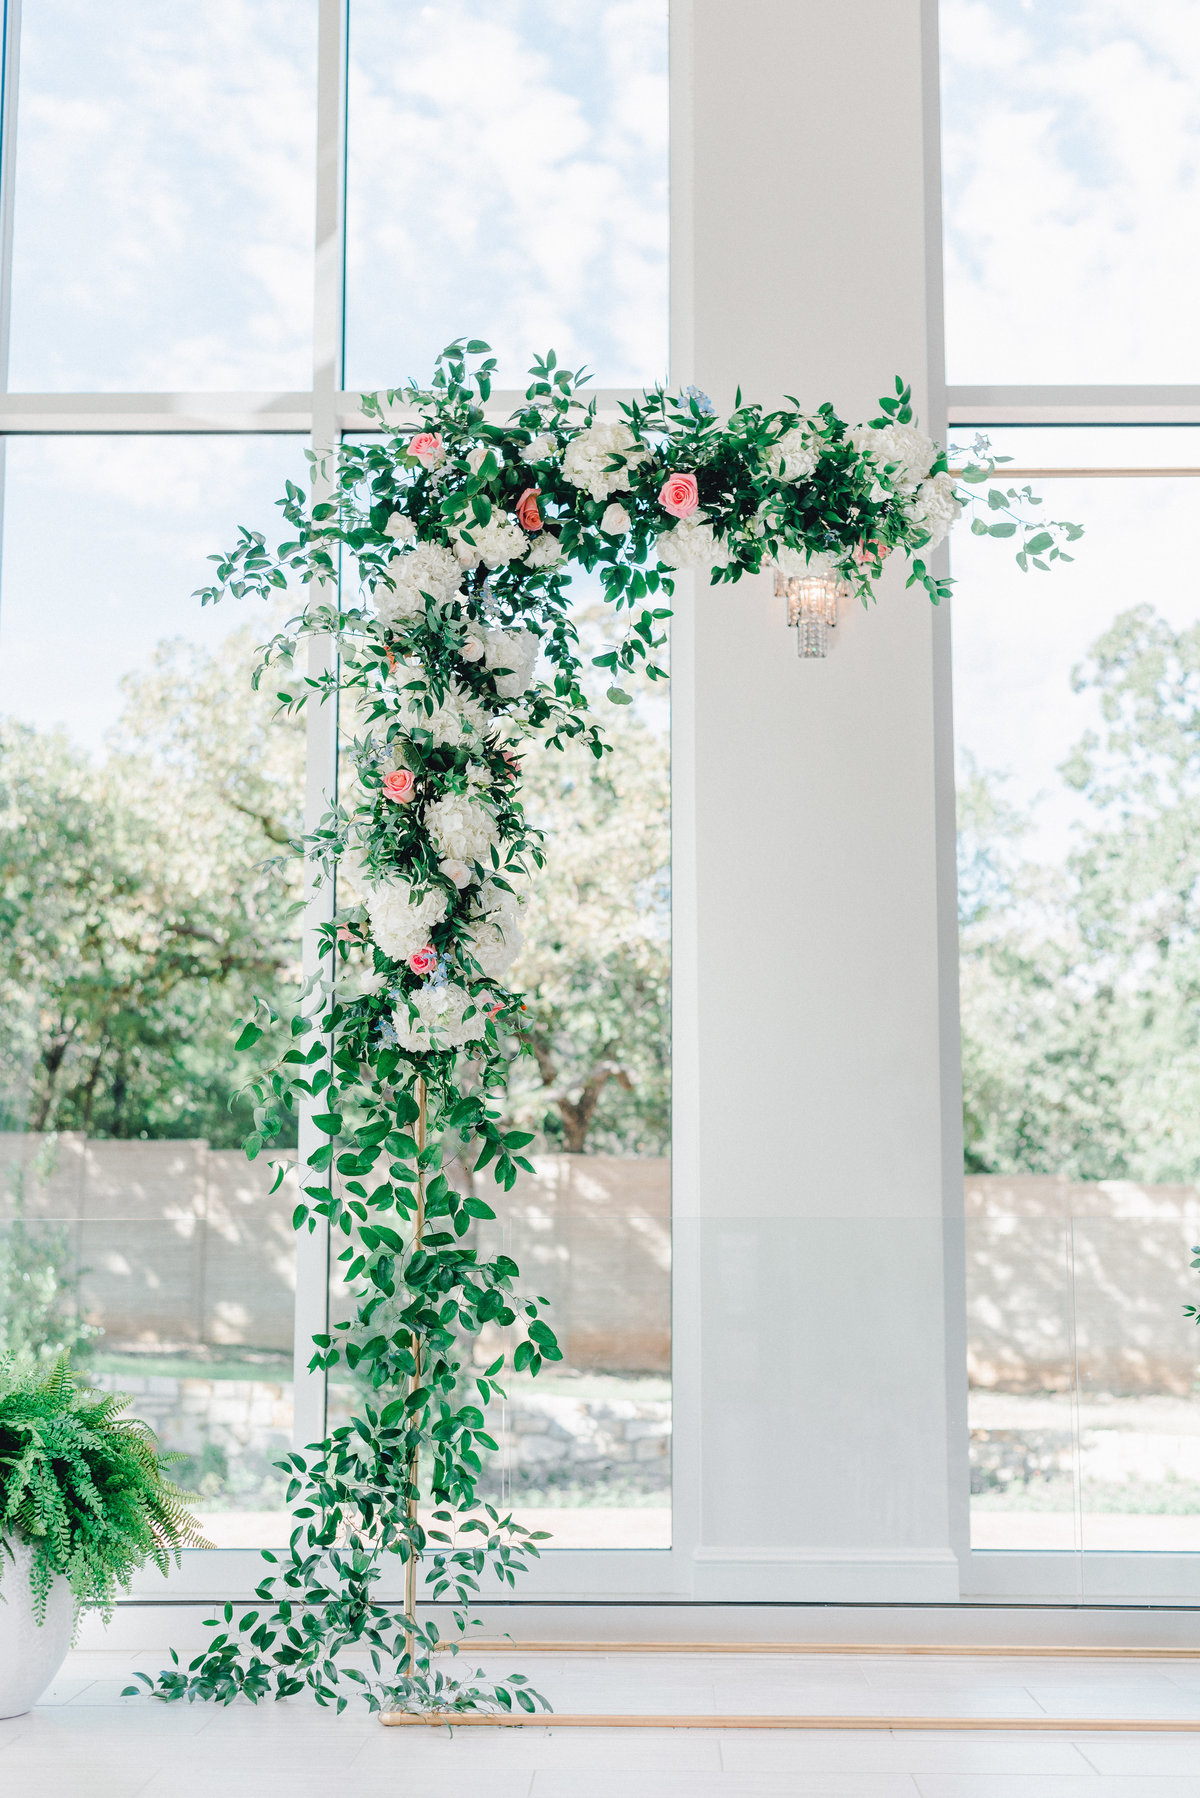 Dallas Wedding Floral Design - A Stylish Soiree - Dallas Wedding Florist - 819